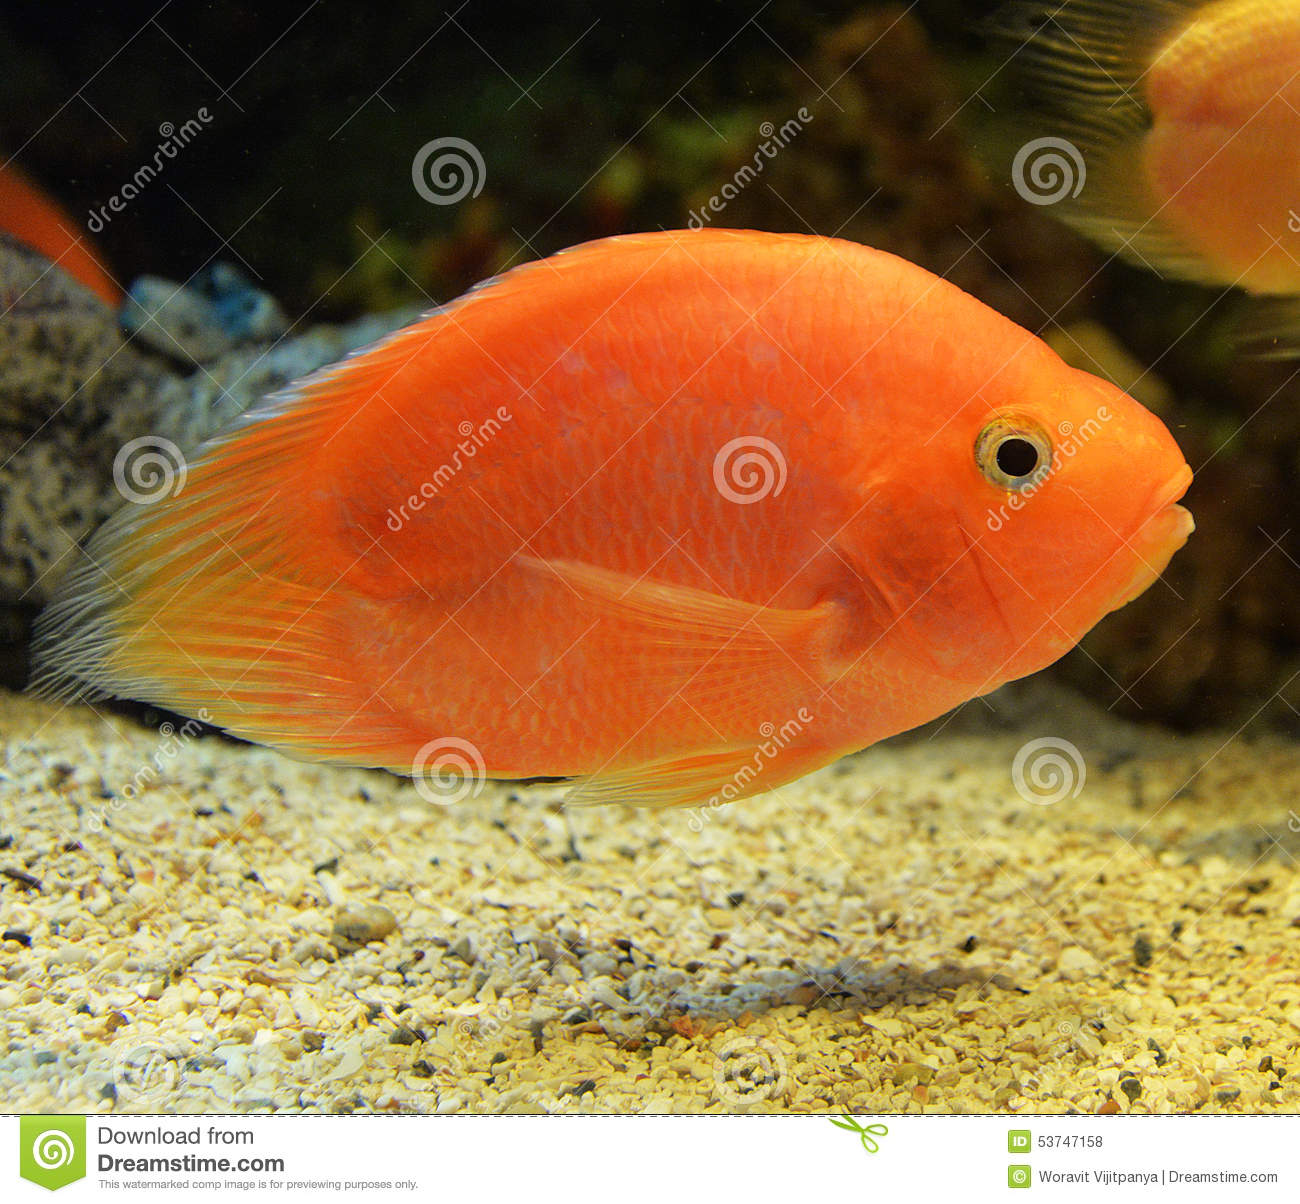 Parrotfish stock photo. Image of holiday, cretense, grey - 53747158